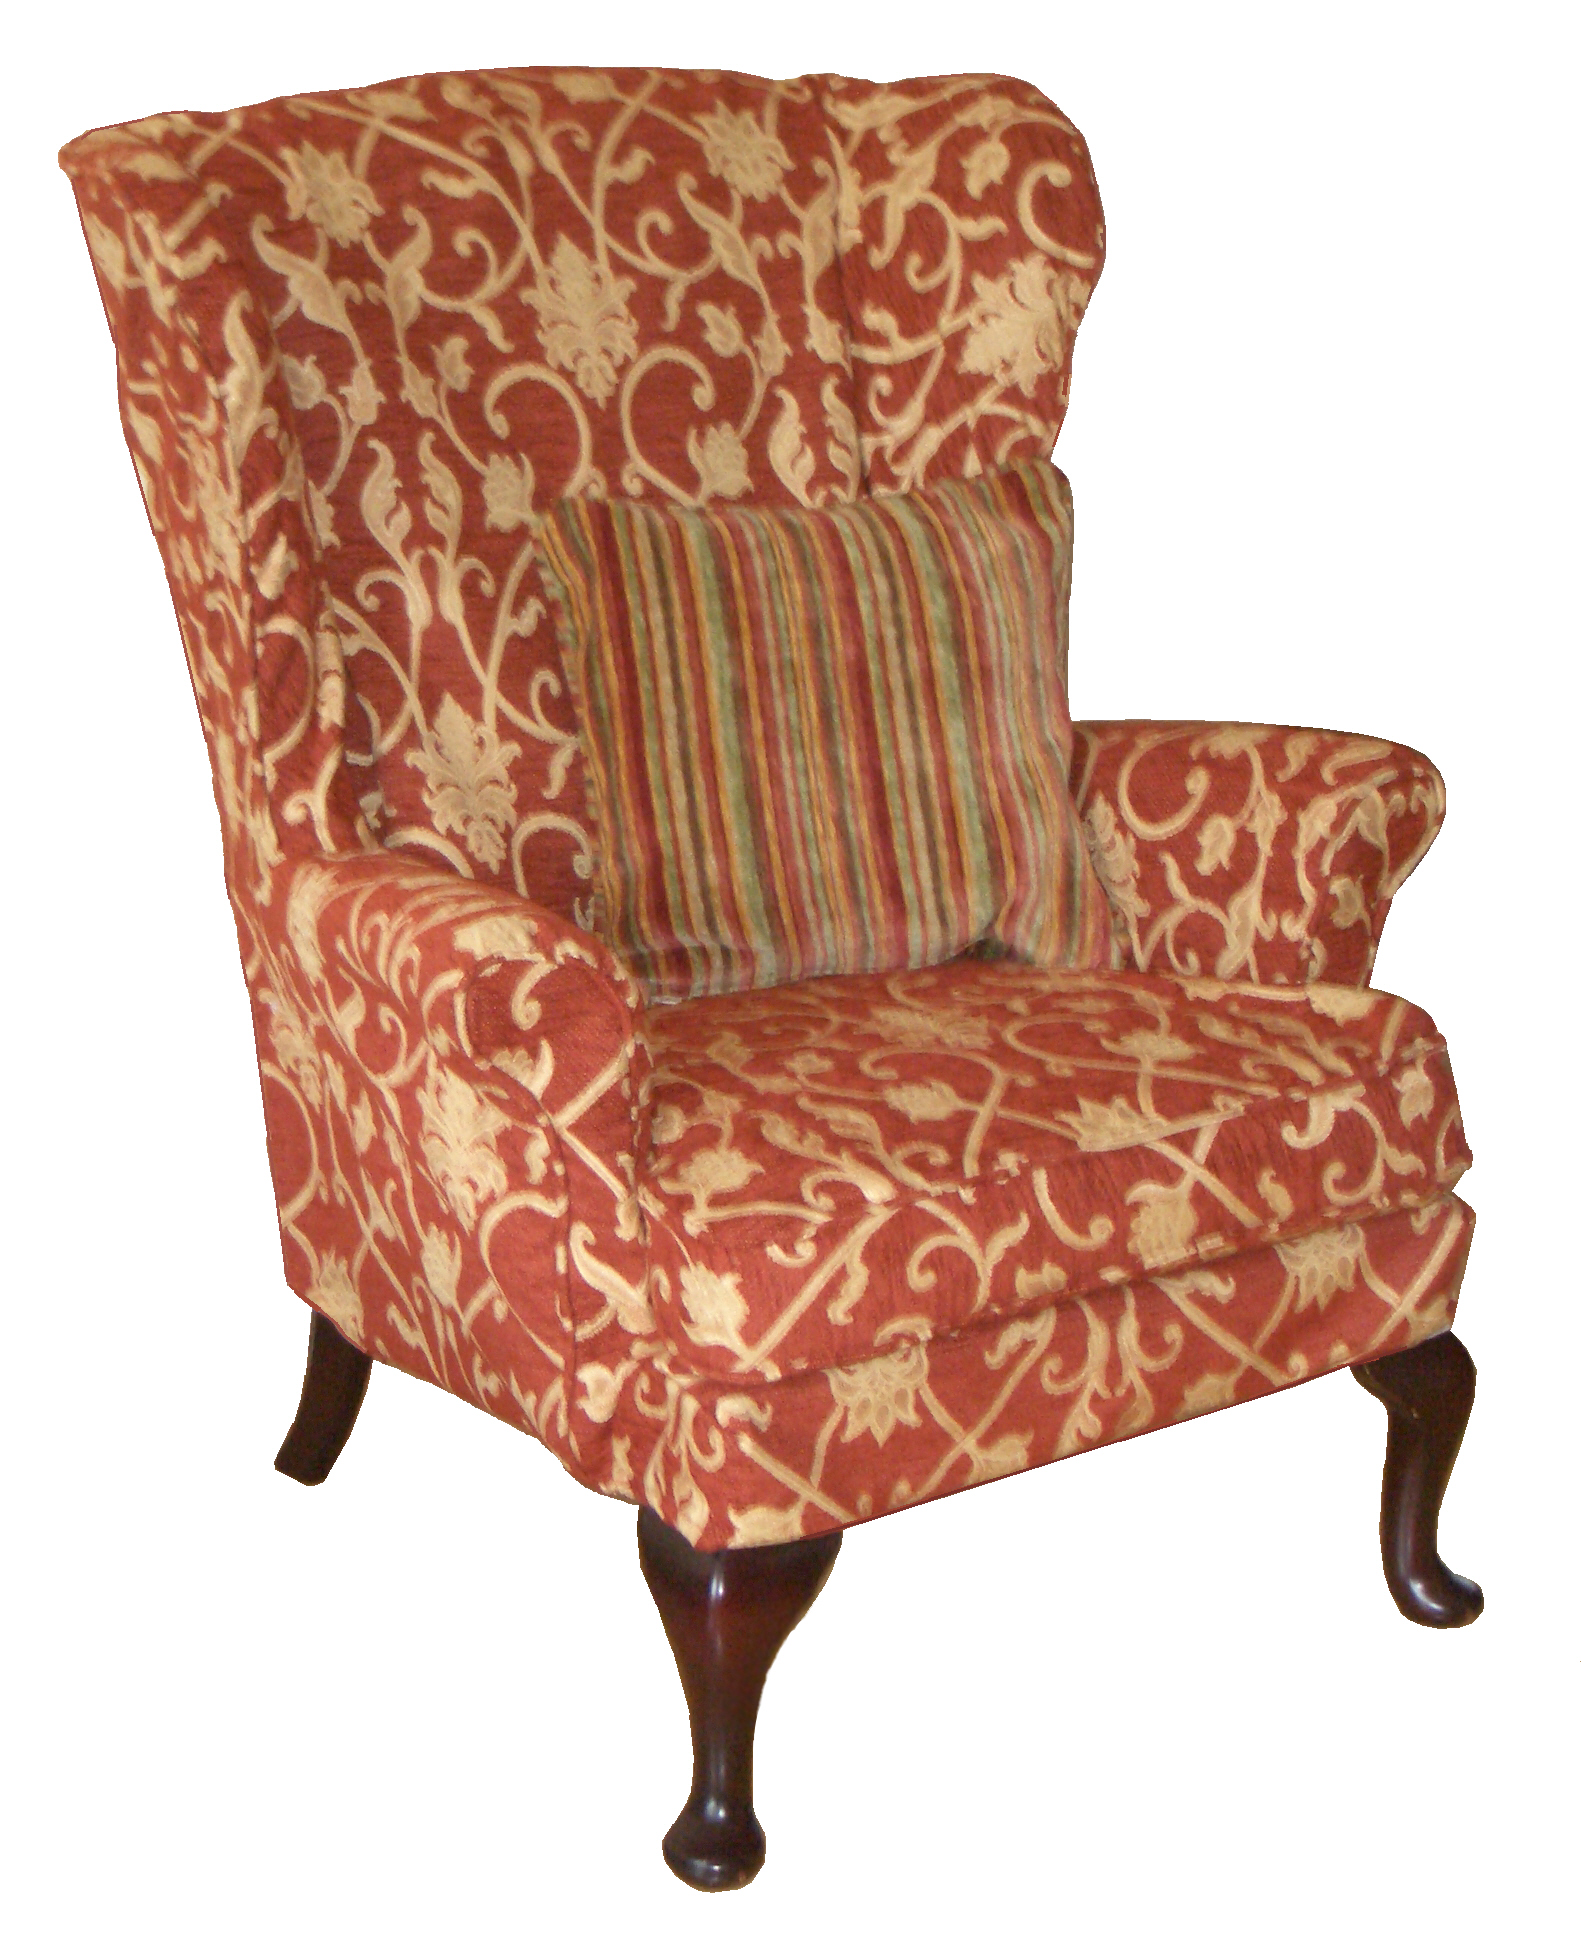 Adorable wing back chair with Solid Strong wood Furniture Design for Dining chair and Living Room Chair Ideas